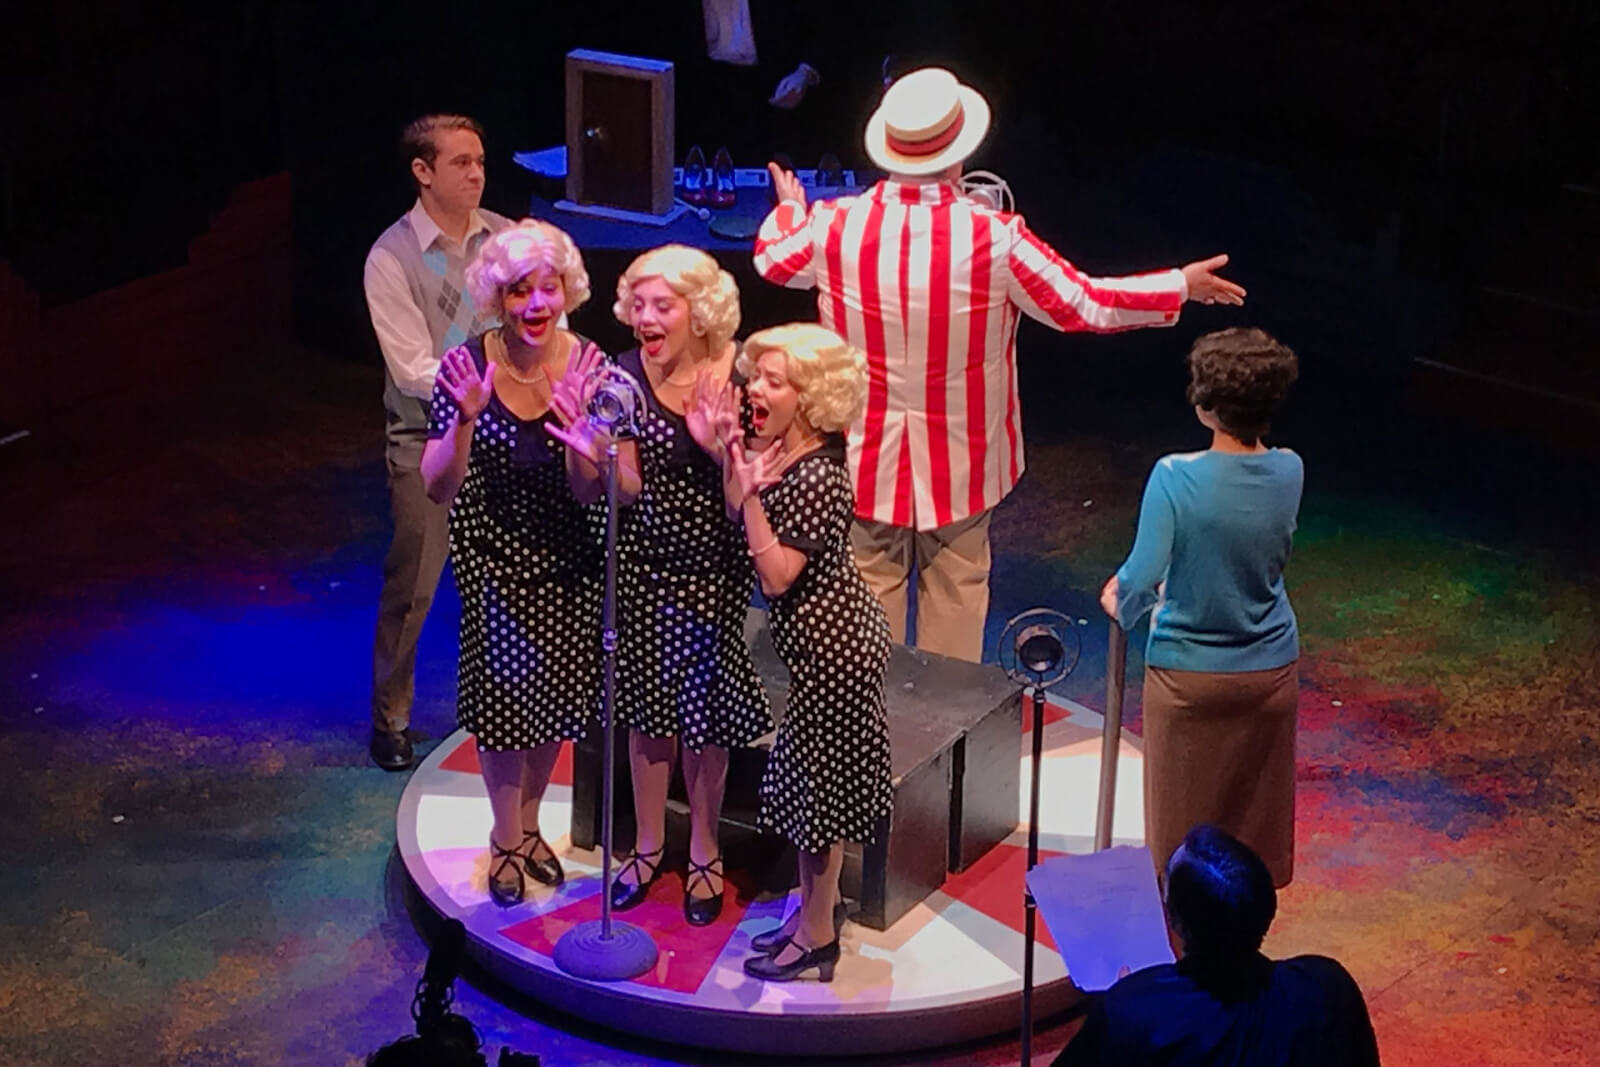 Performing Annie at Hale Theatre